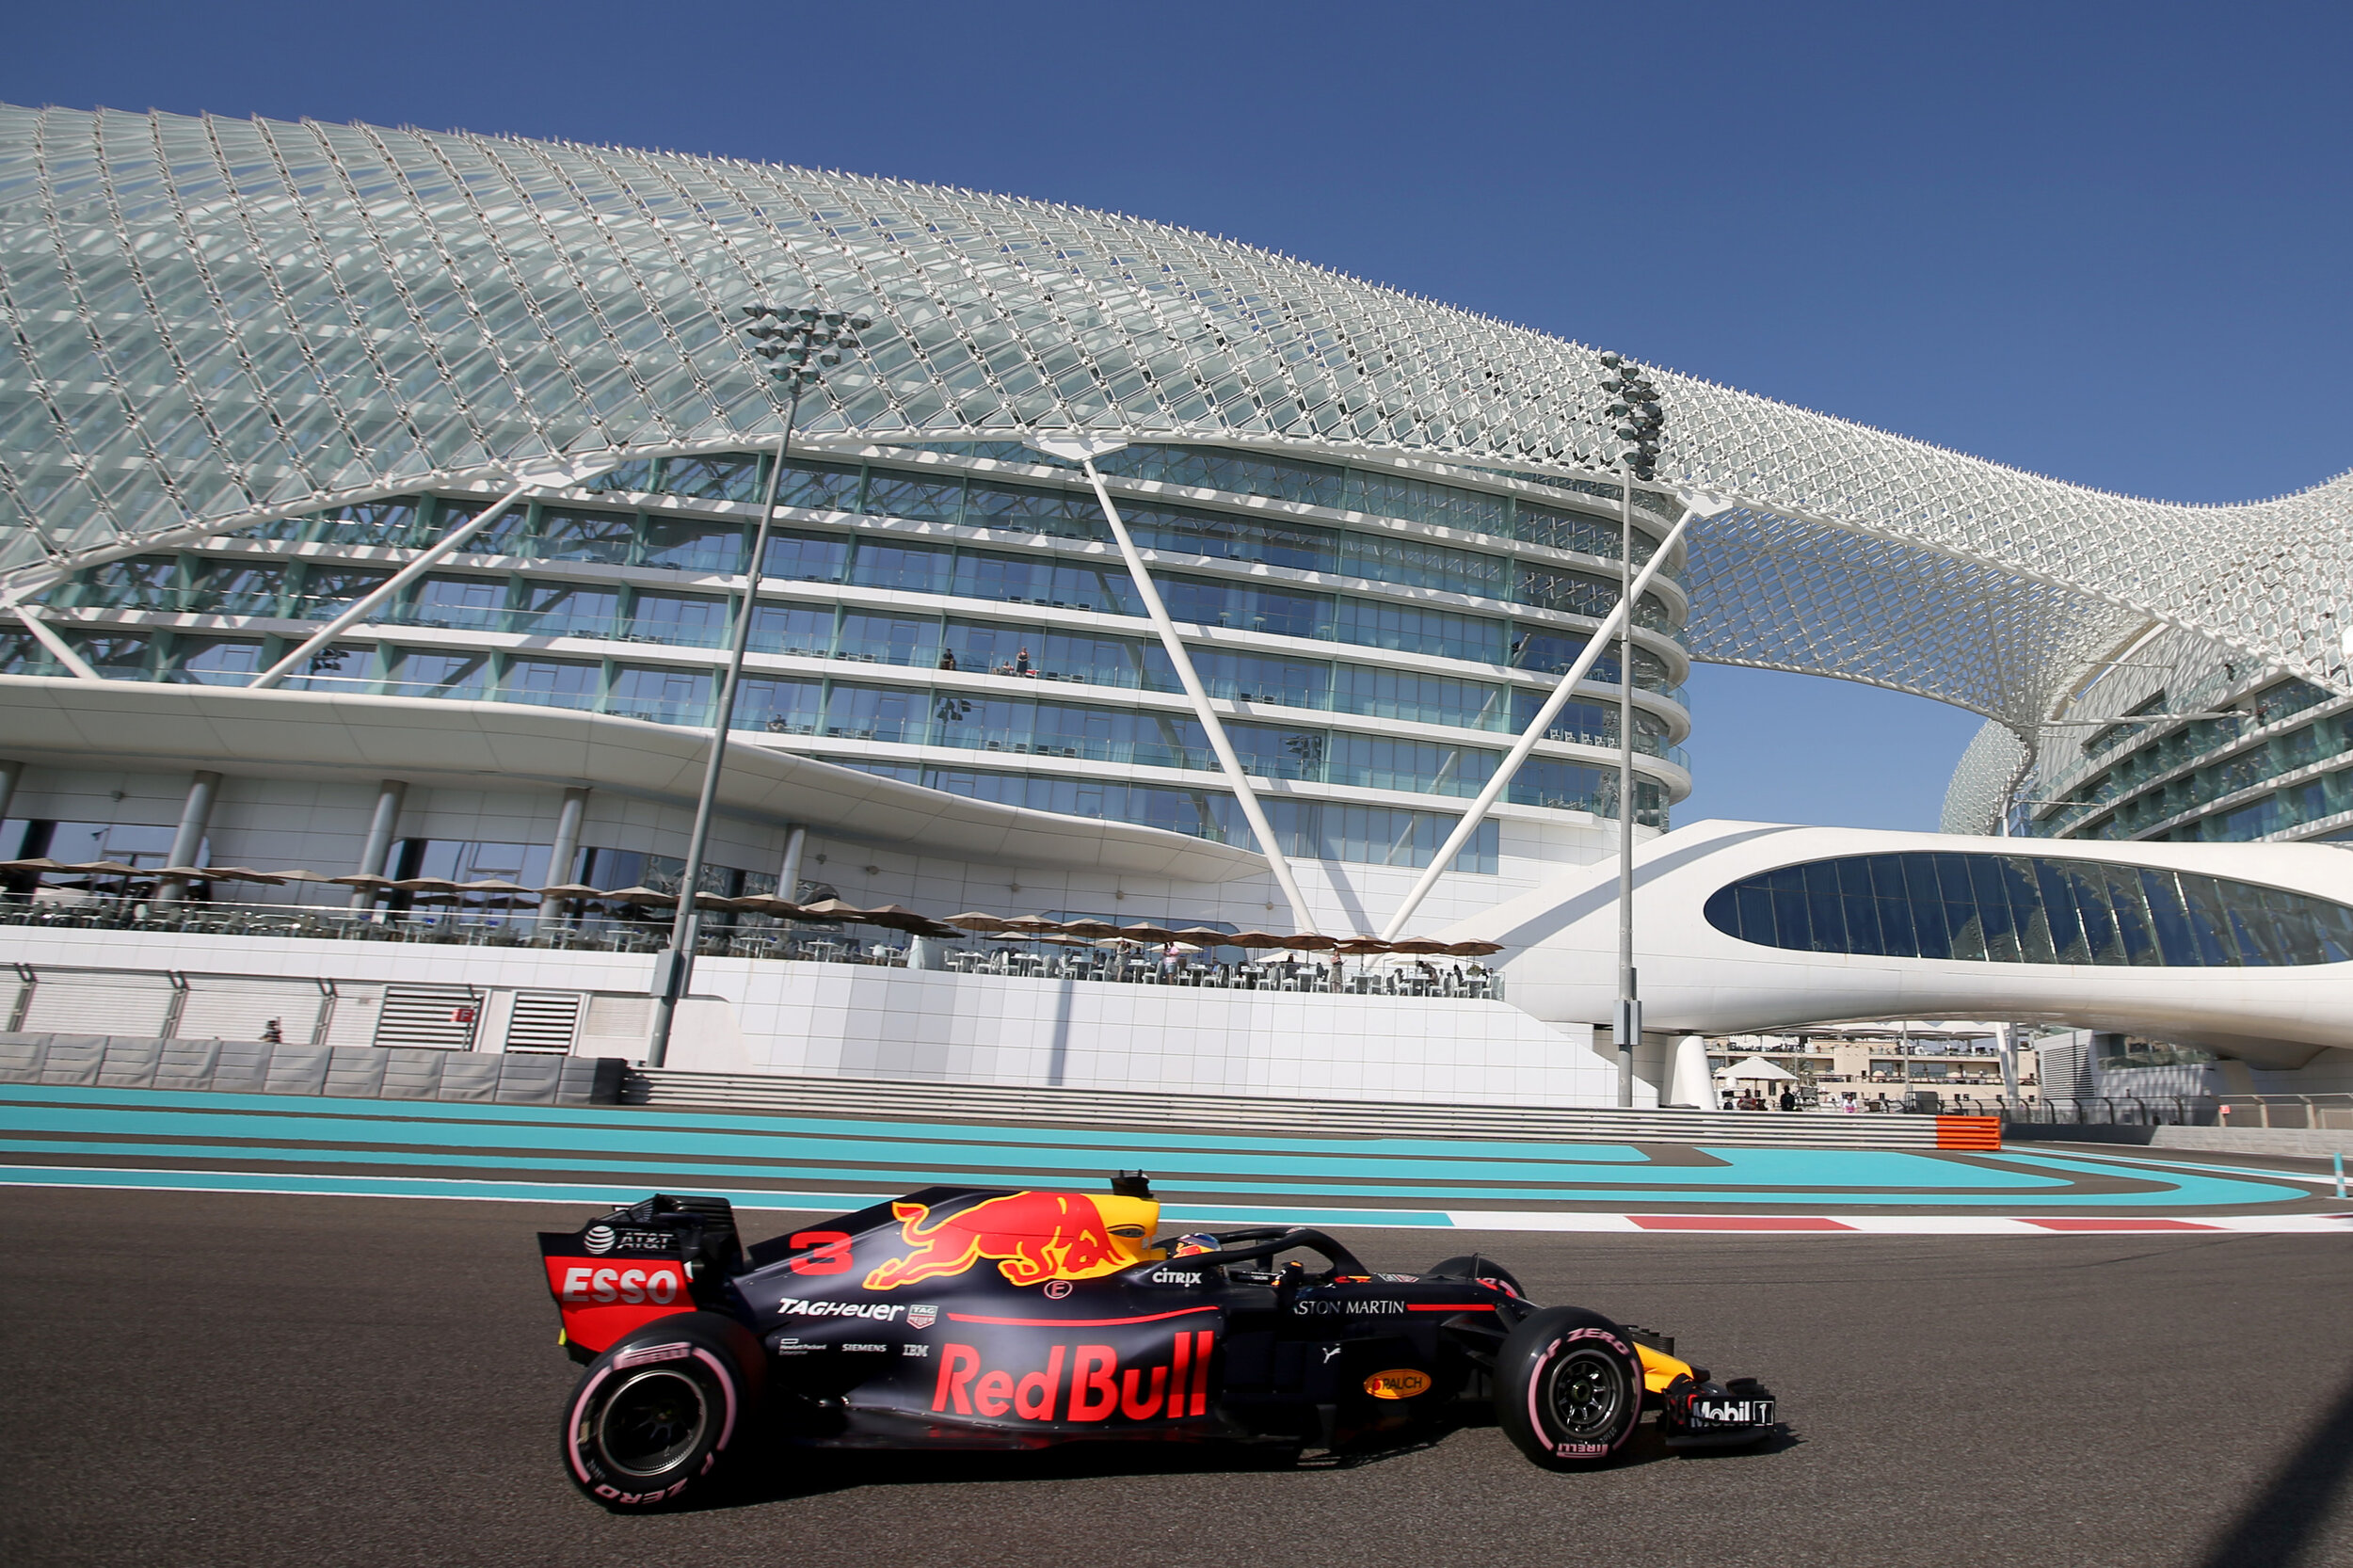 Image courtesy of: Red Bull